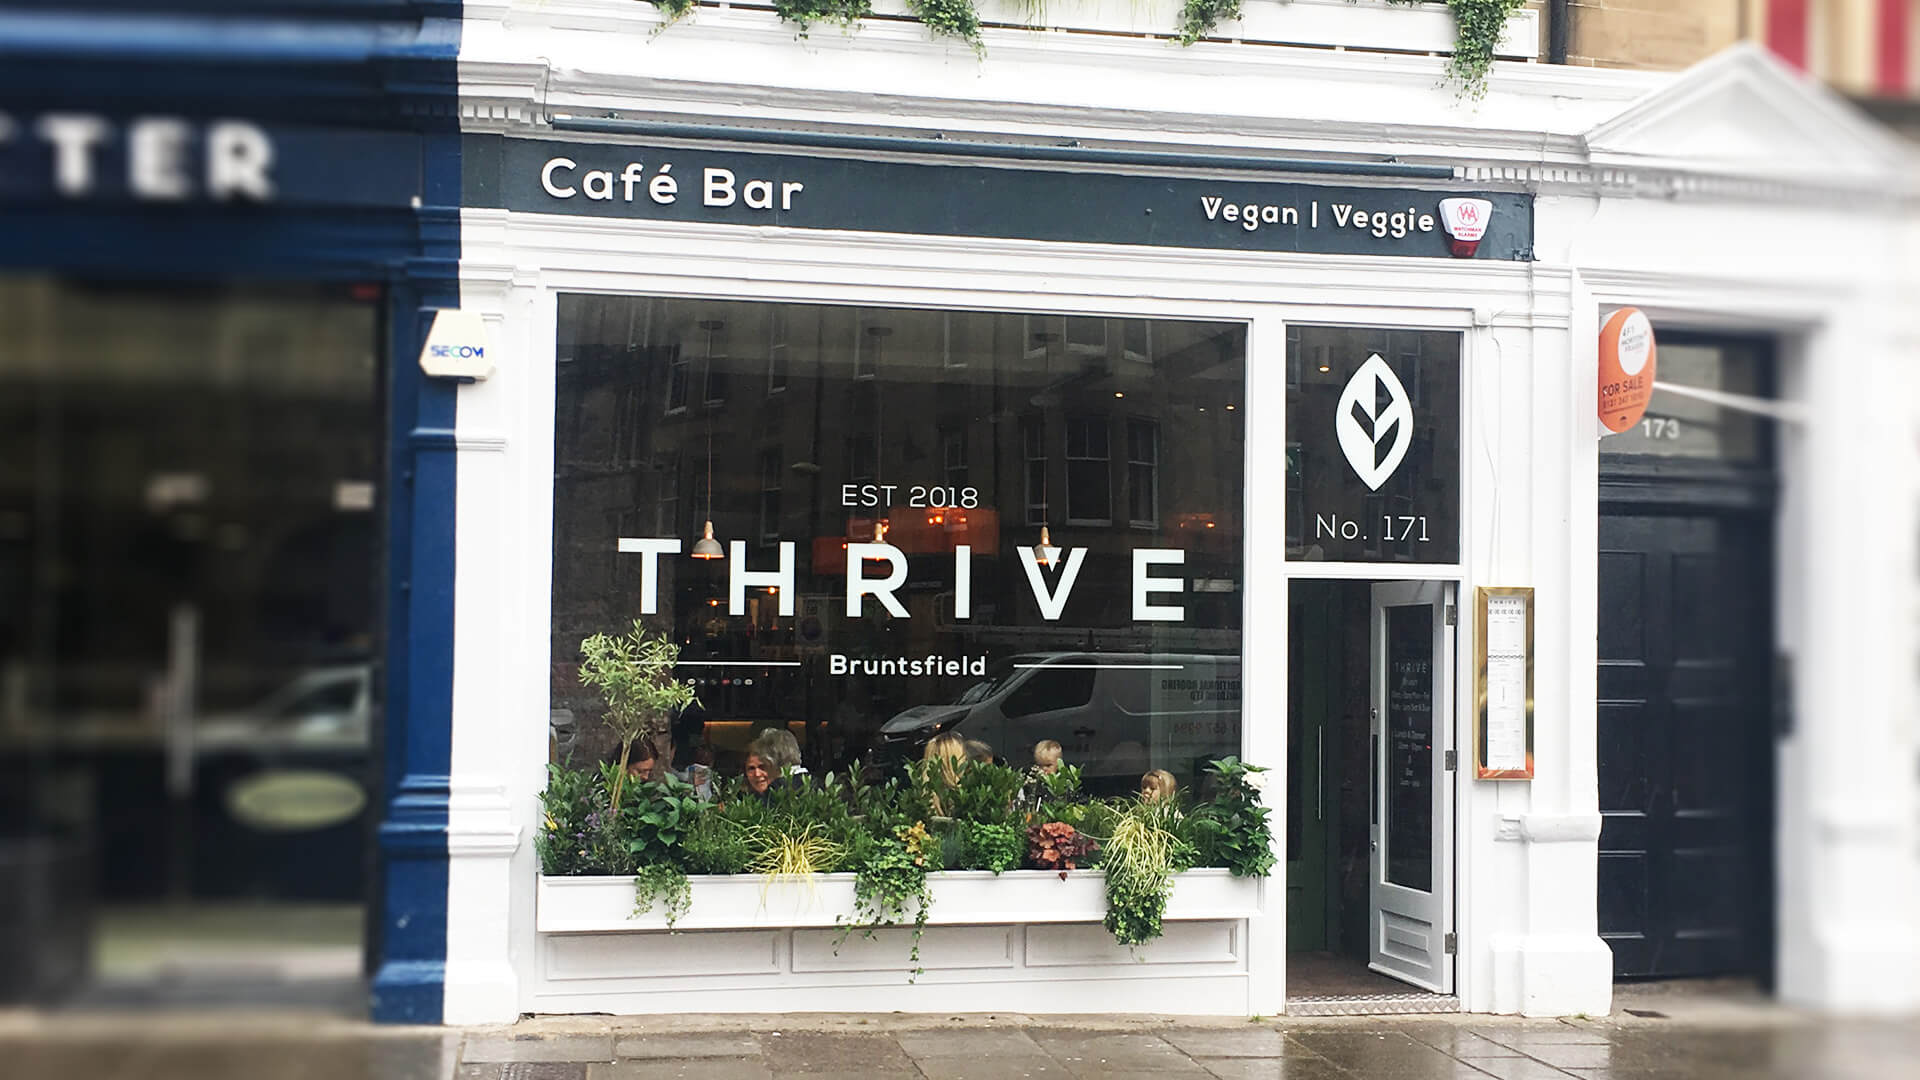 Photo of exterior vegan bar branding & signage